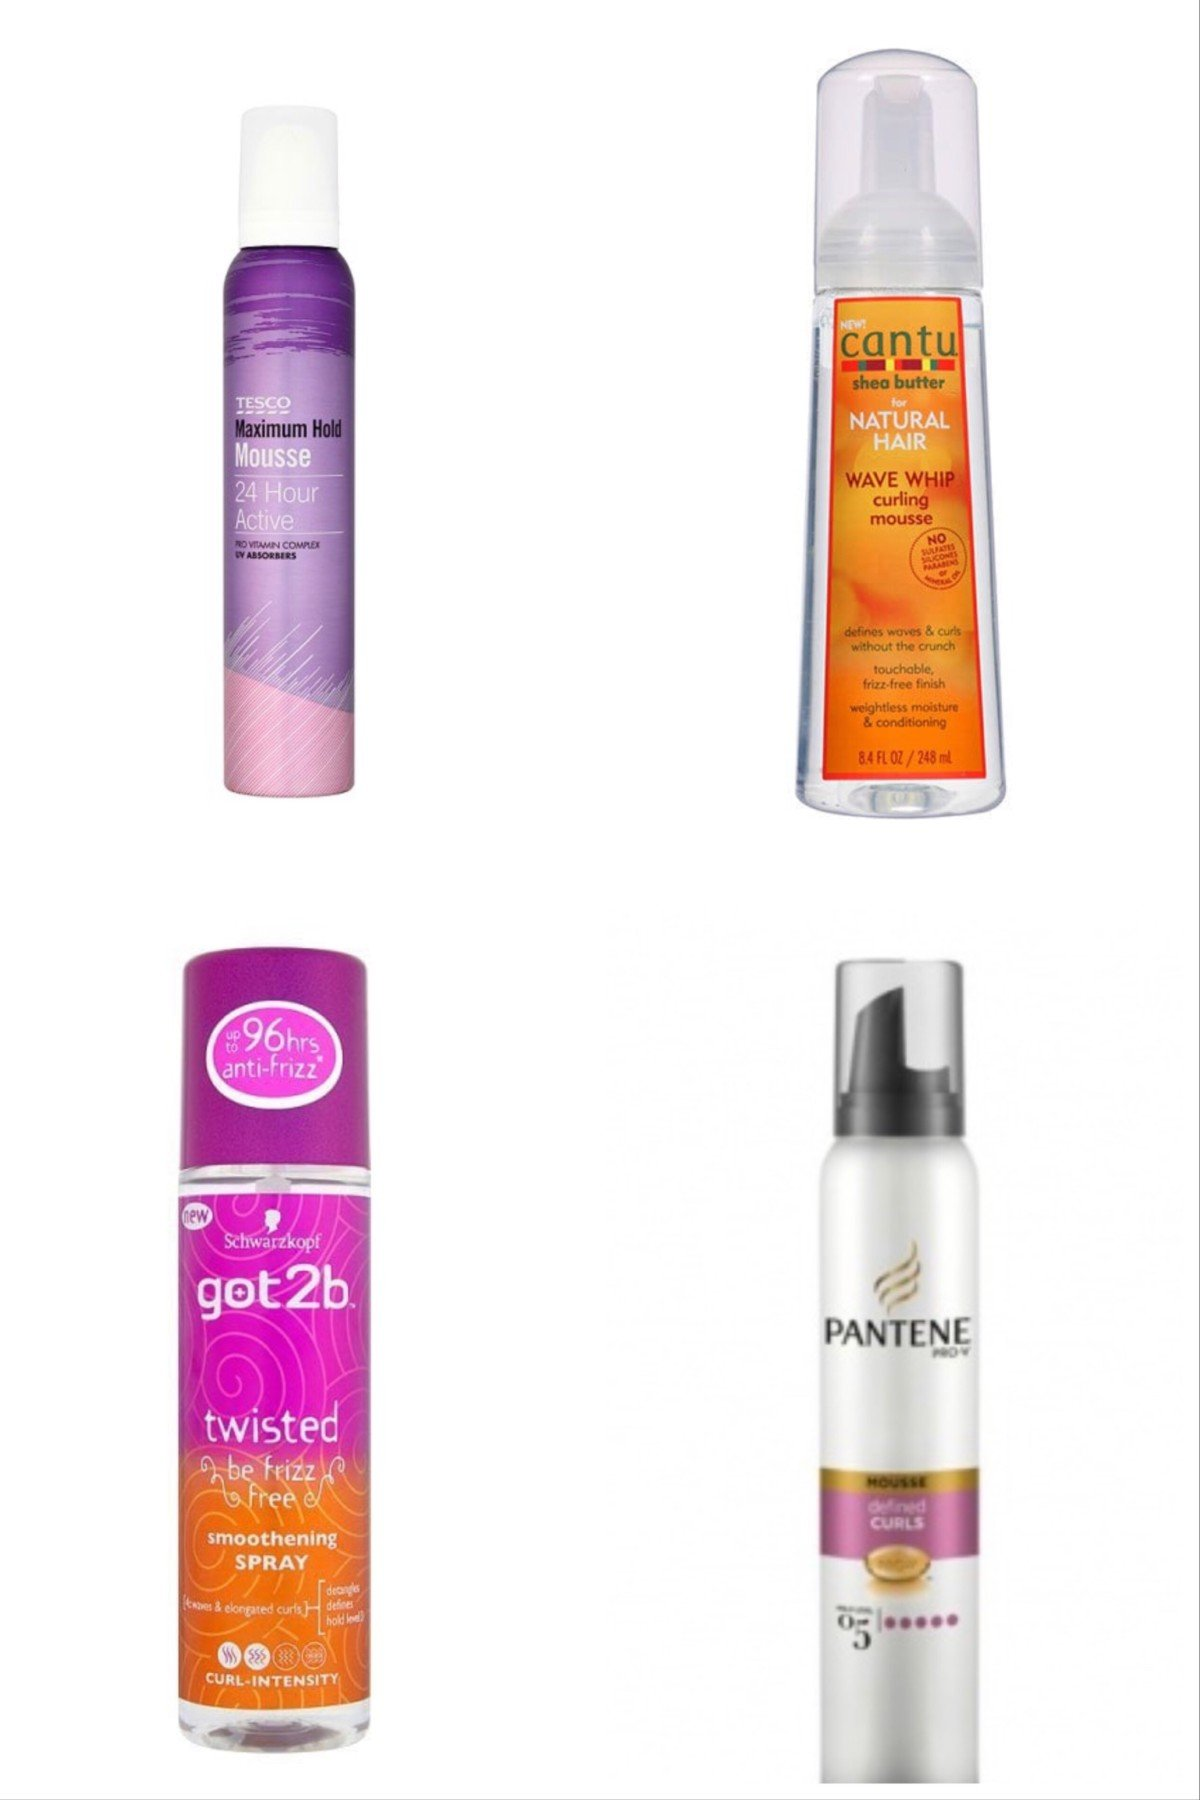 Curly Girl method styling mousse and sprays in UK supermarkets and drugstores